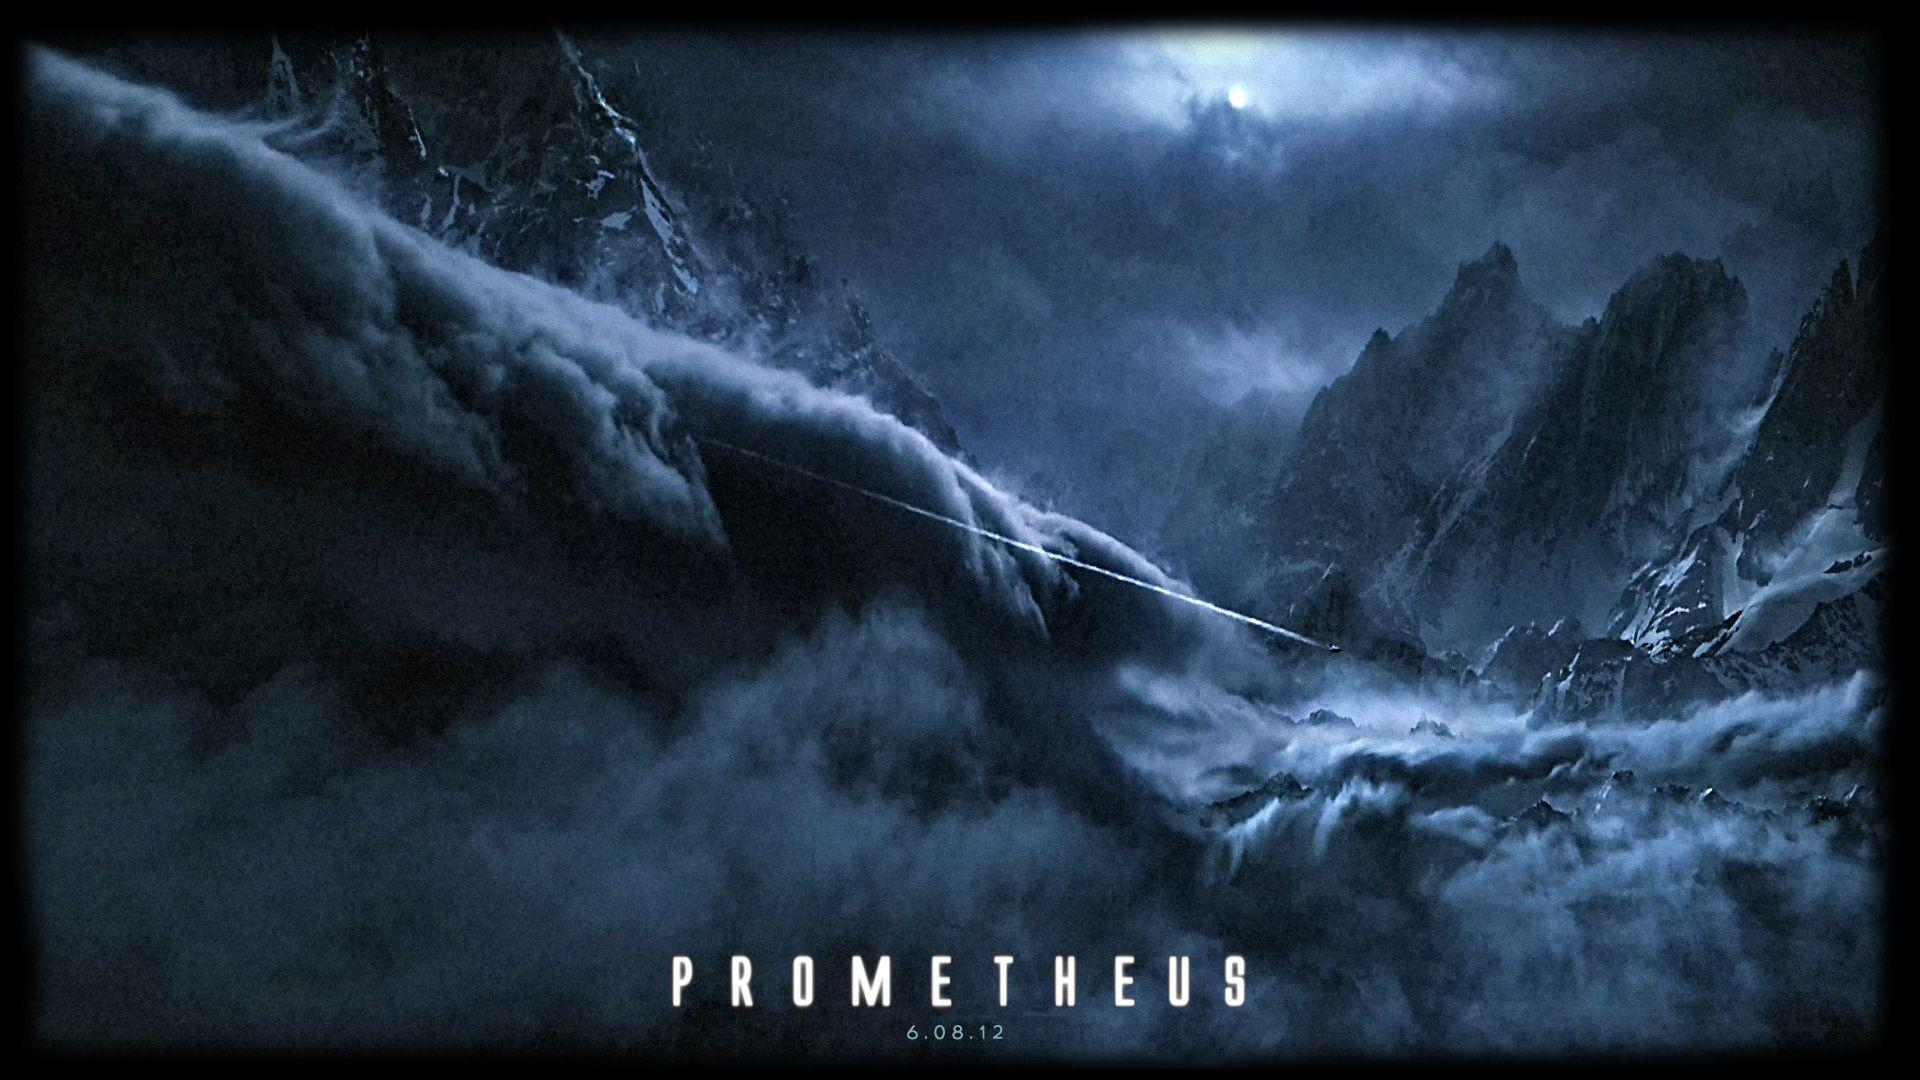 20 HD Wallpapers from Prometheus by Ridley Scott